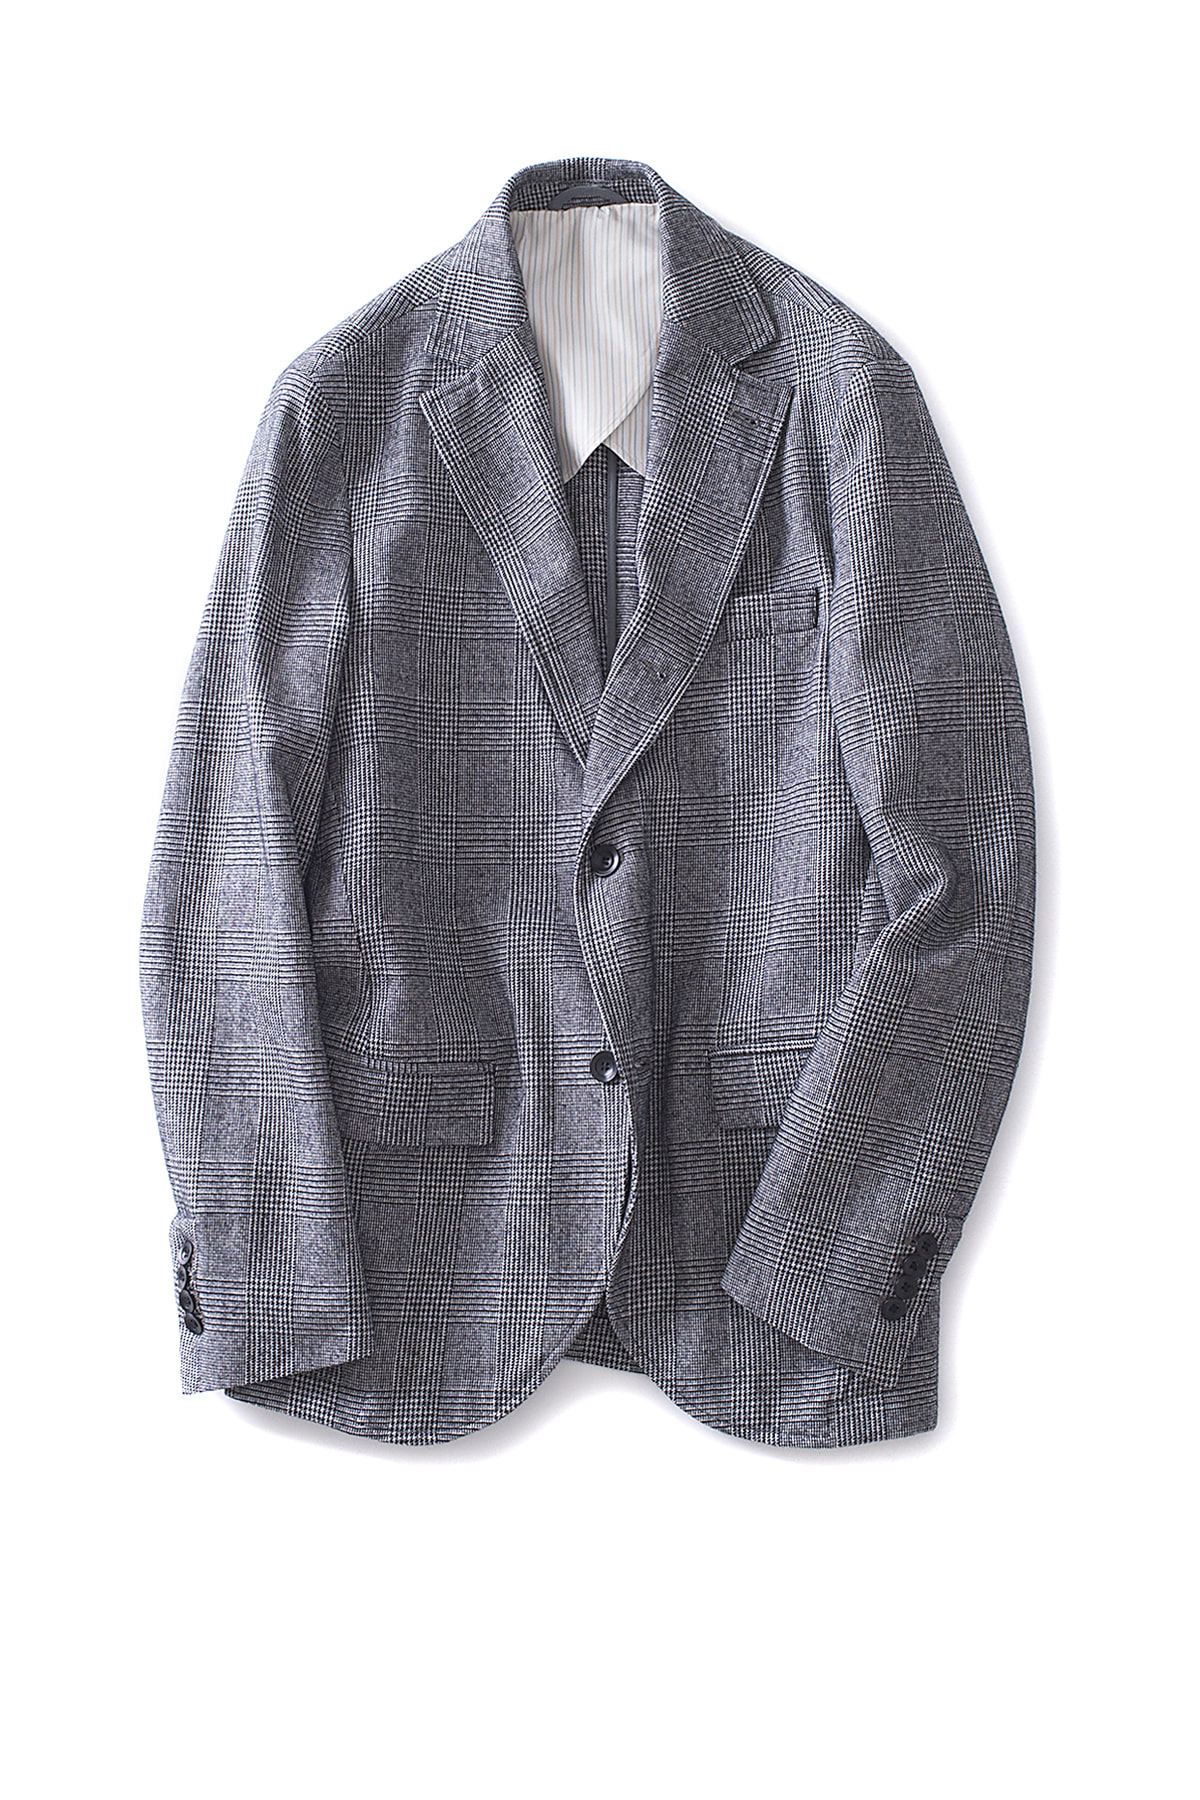 EHS : Tailored Jacket (Grey)